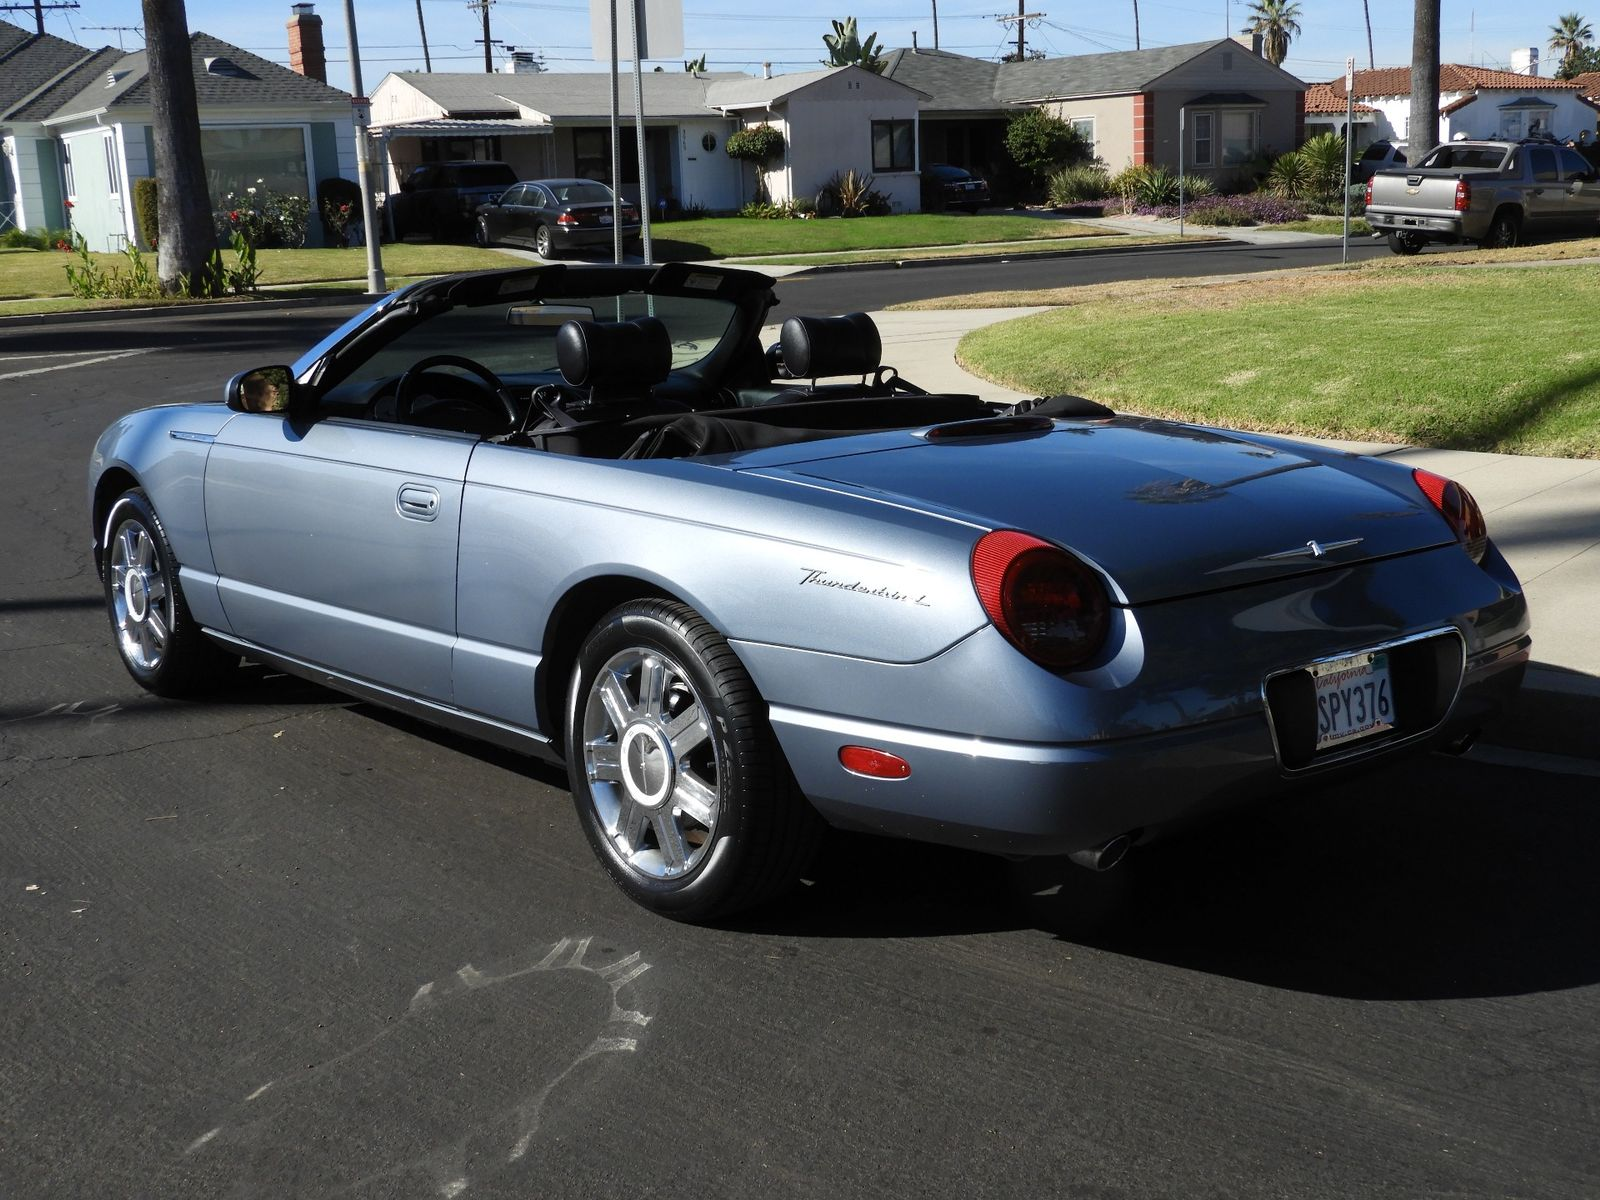 2005 ford thunderbird 50th anniversary city california auto fitness class benz in california